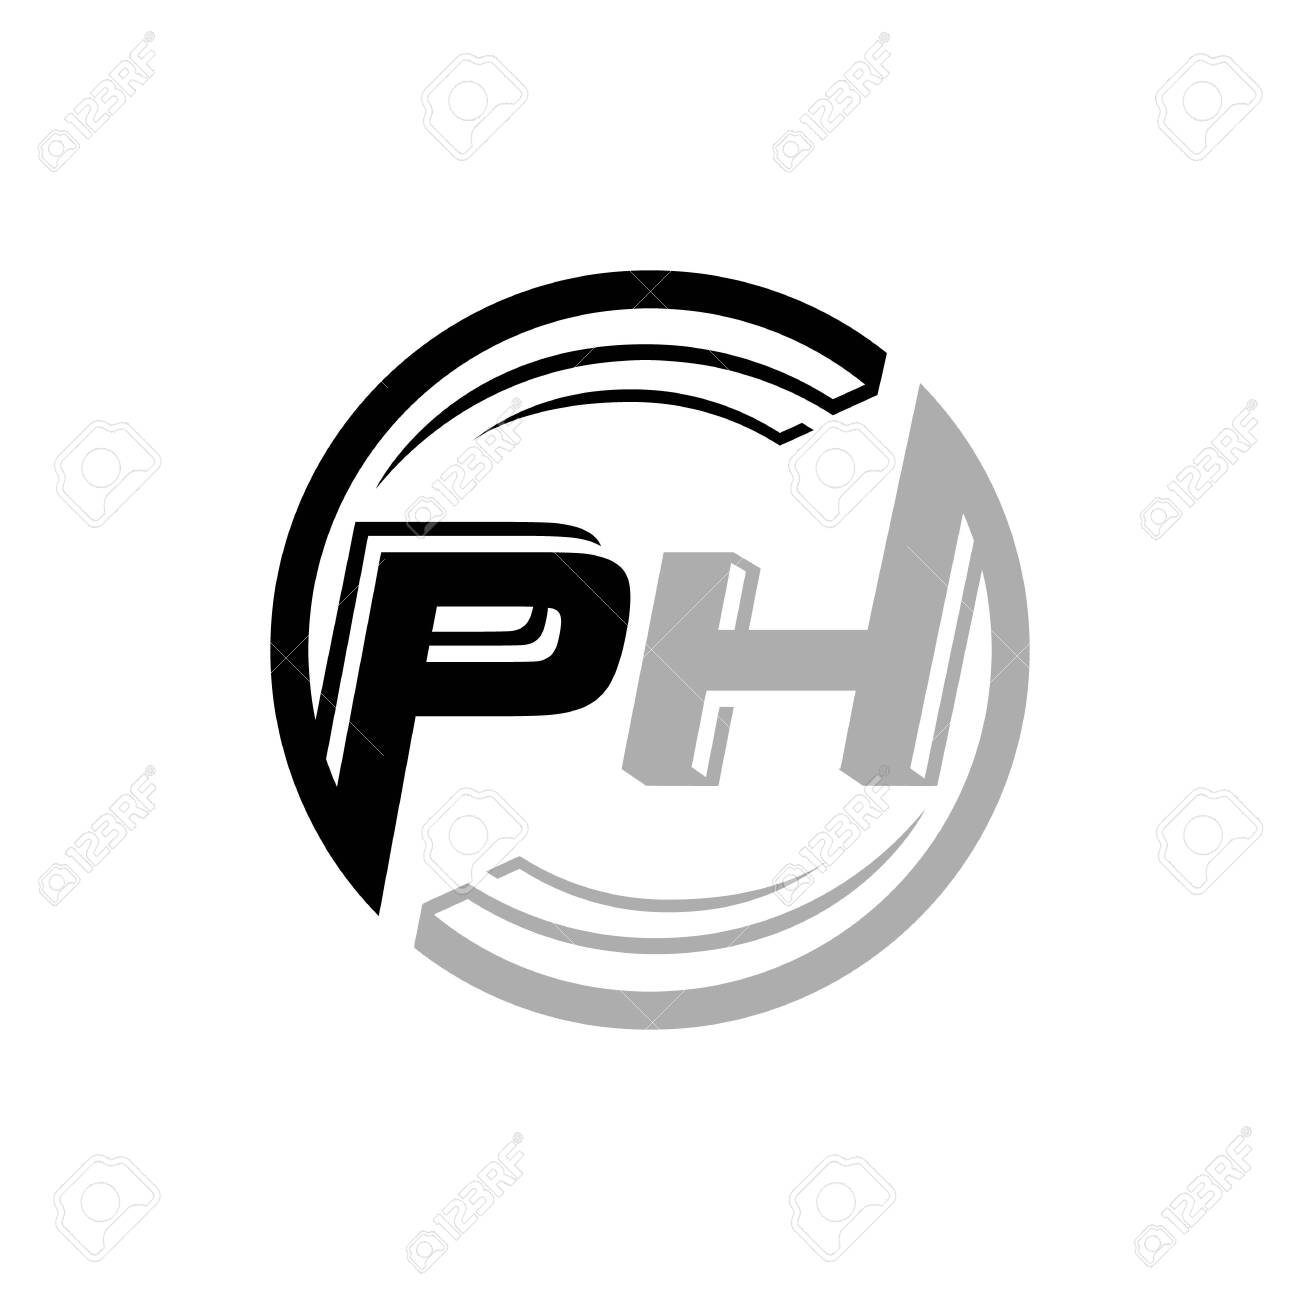 Modern Fitness Abstract People Letter Ph Logo Vector Inspirations Royalty Free Cliparts Vectors And Stock Illustration Image 128955820